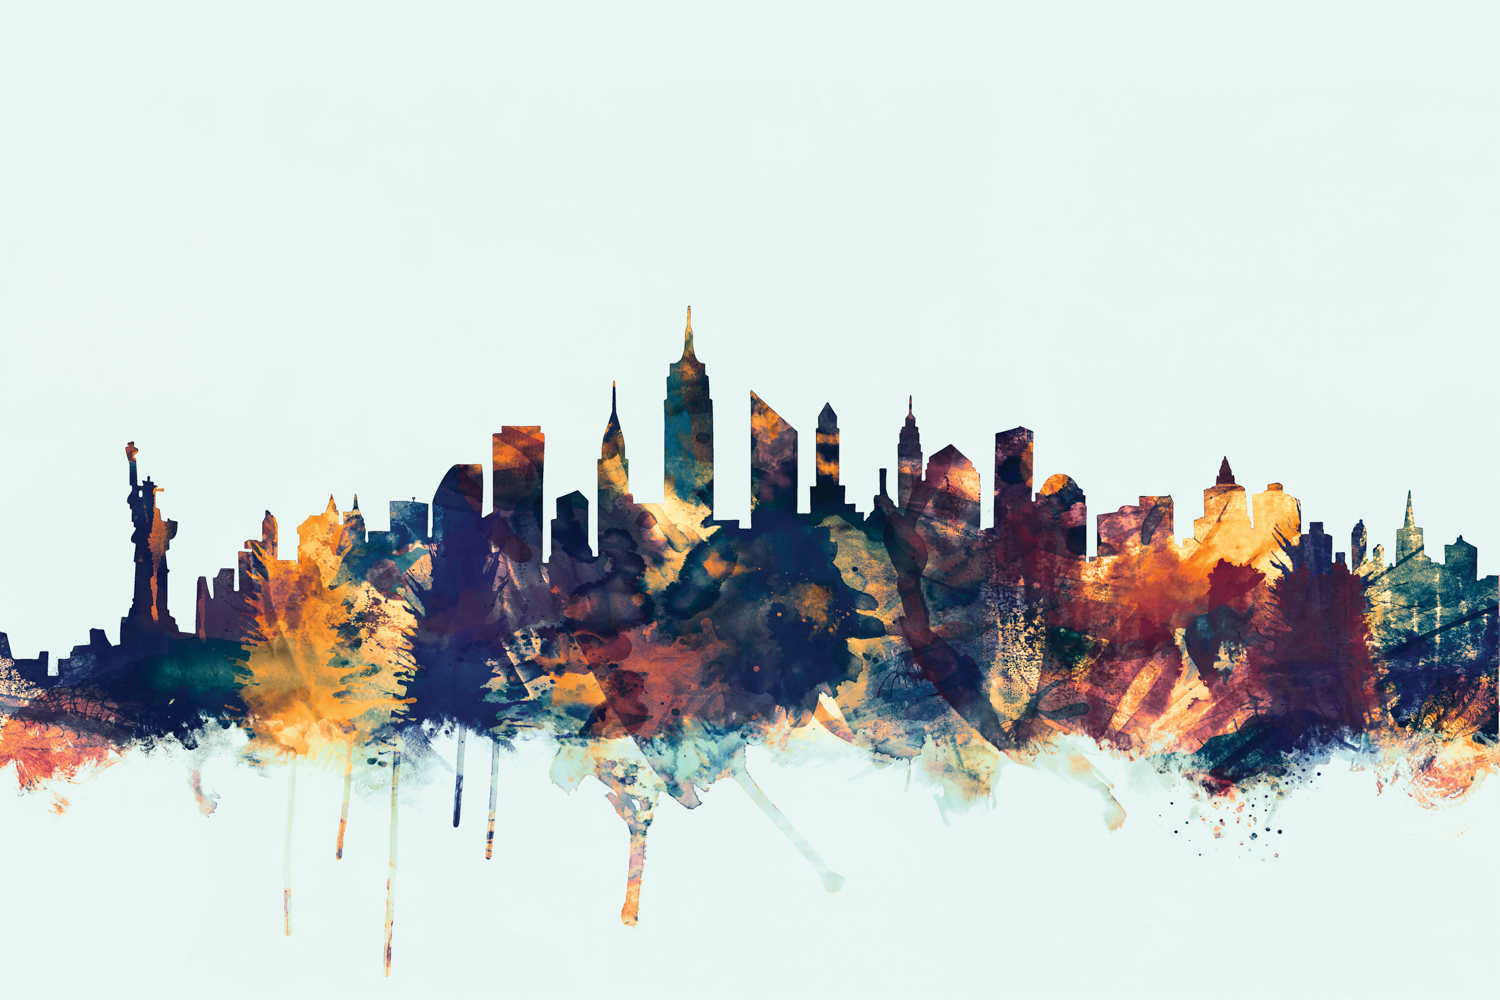 new york city skyline including empire state building and statue of liberty in golds, maroons, and teals